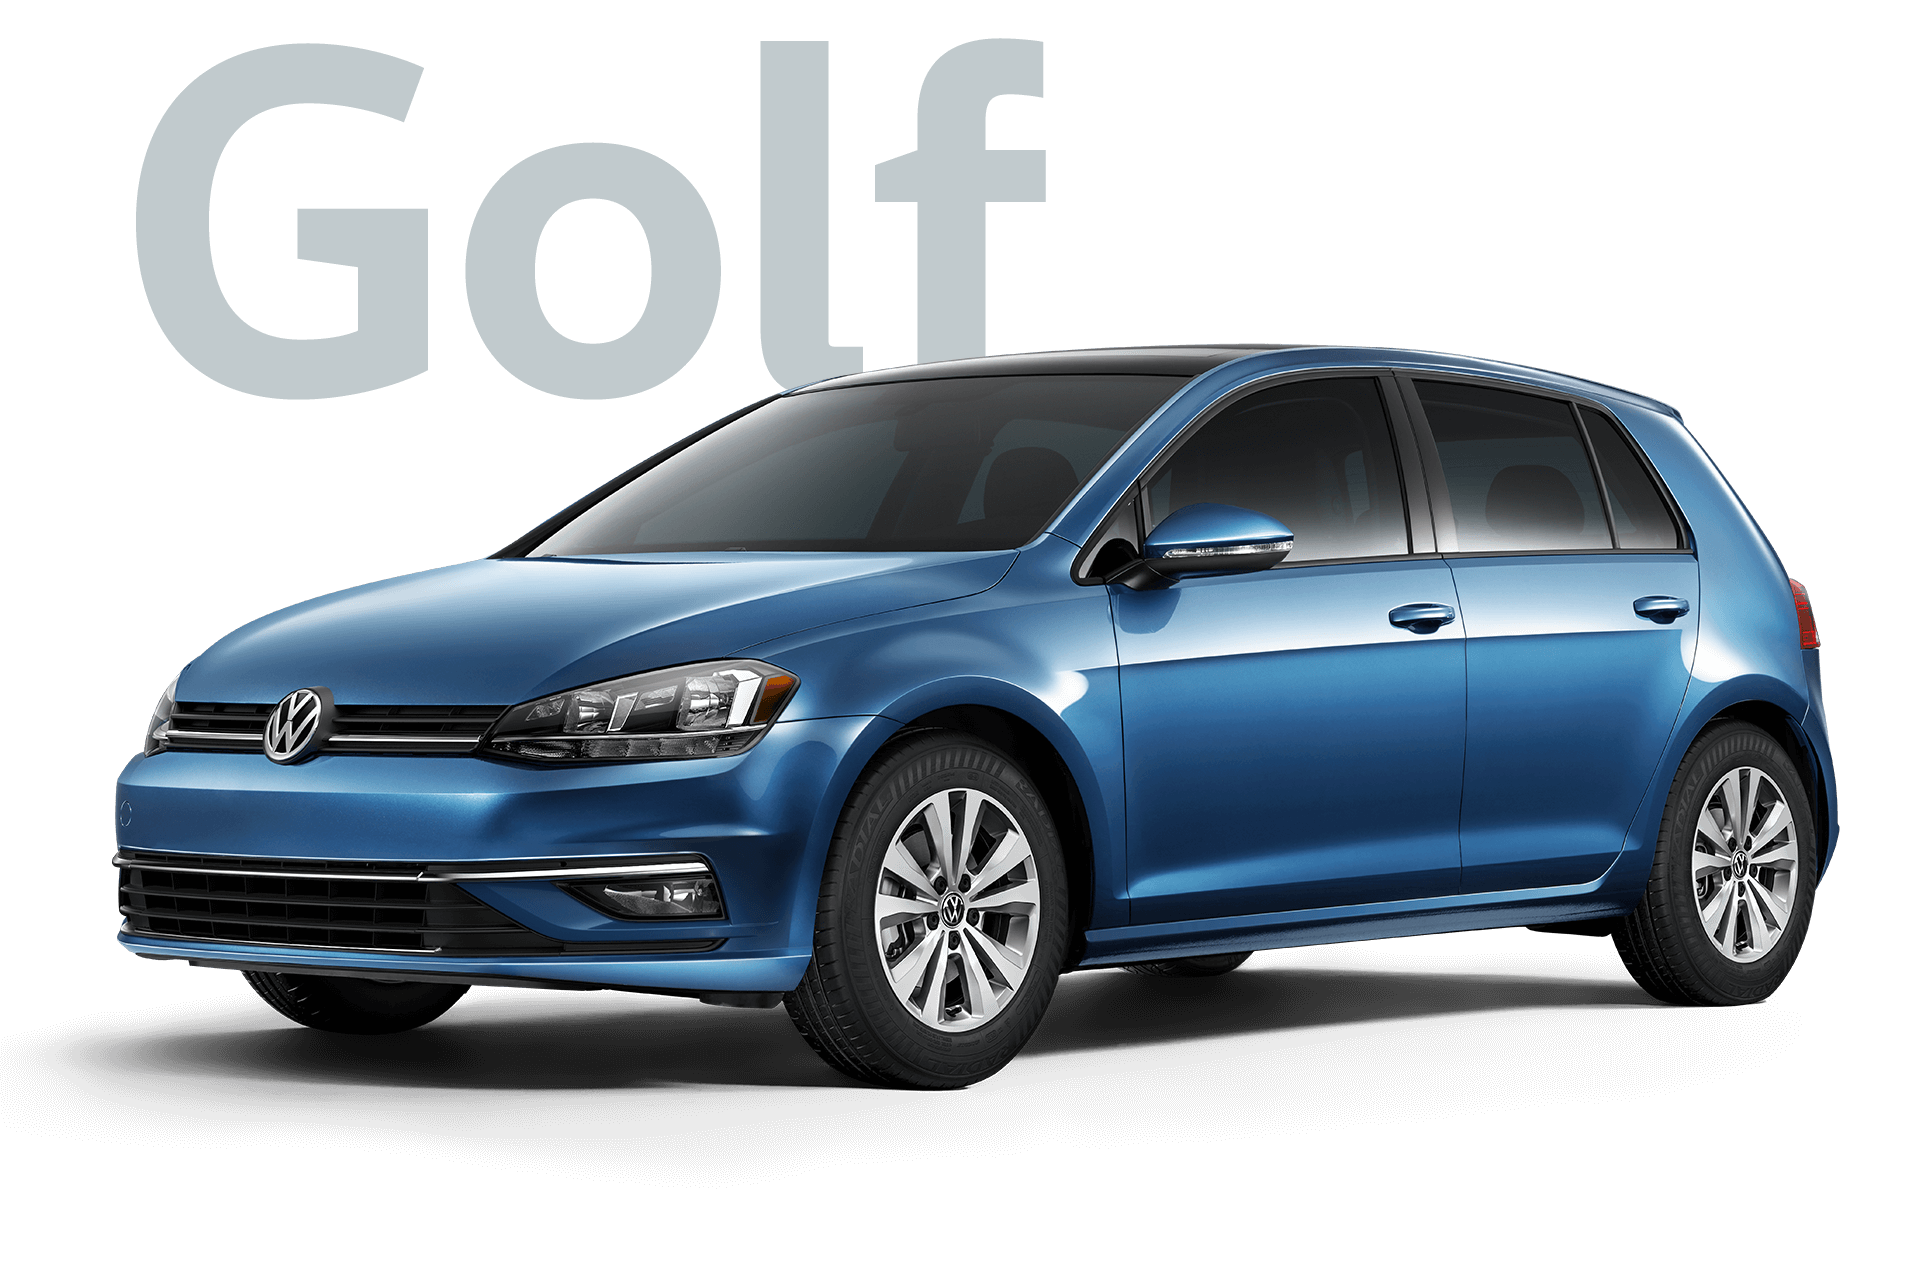 2018 VW Golf Modern Hatchback | Volkswagen